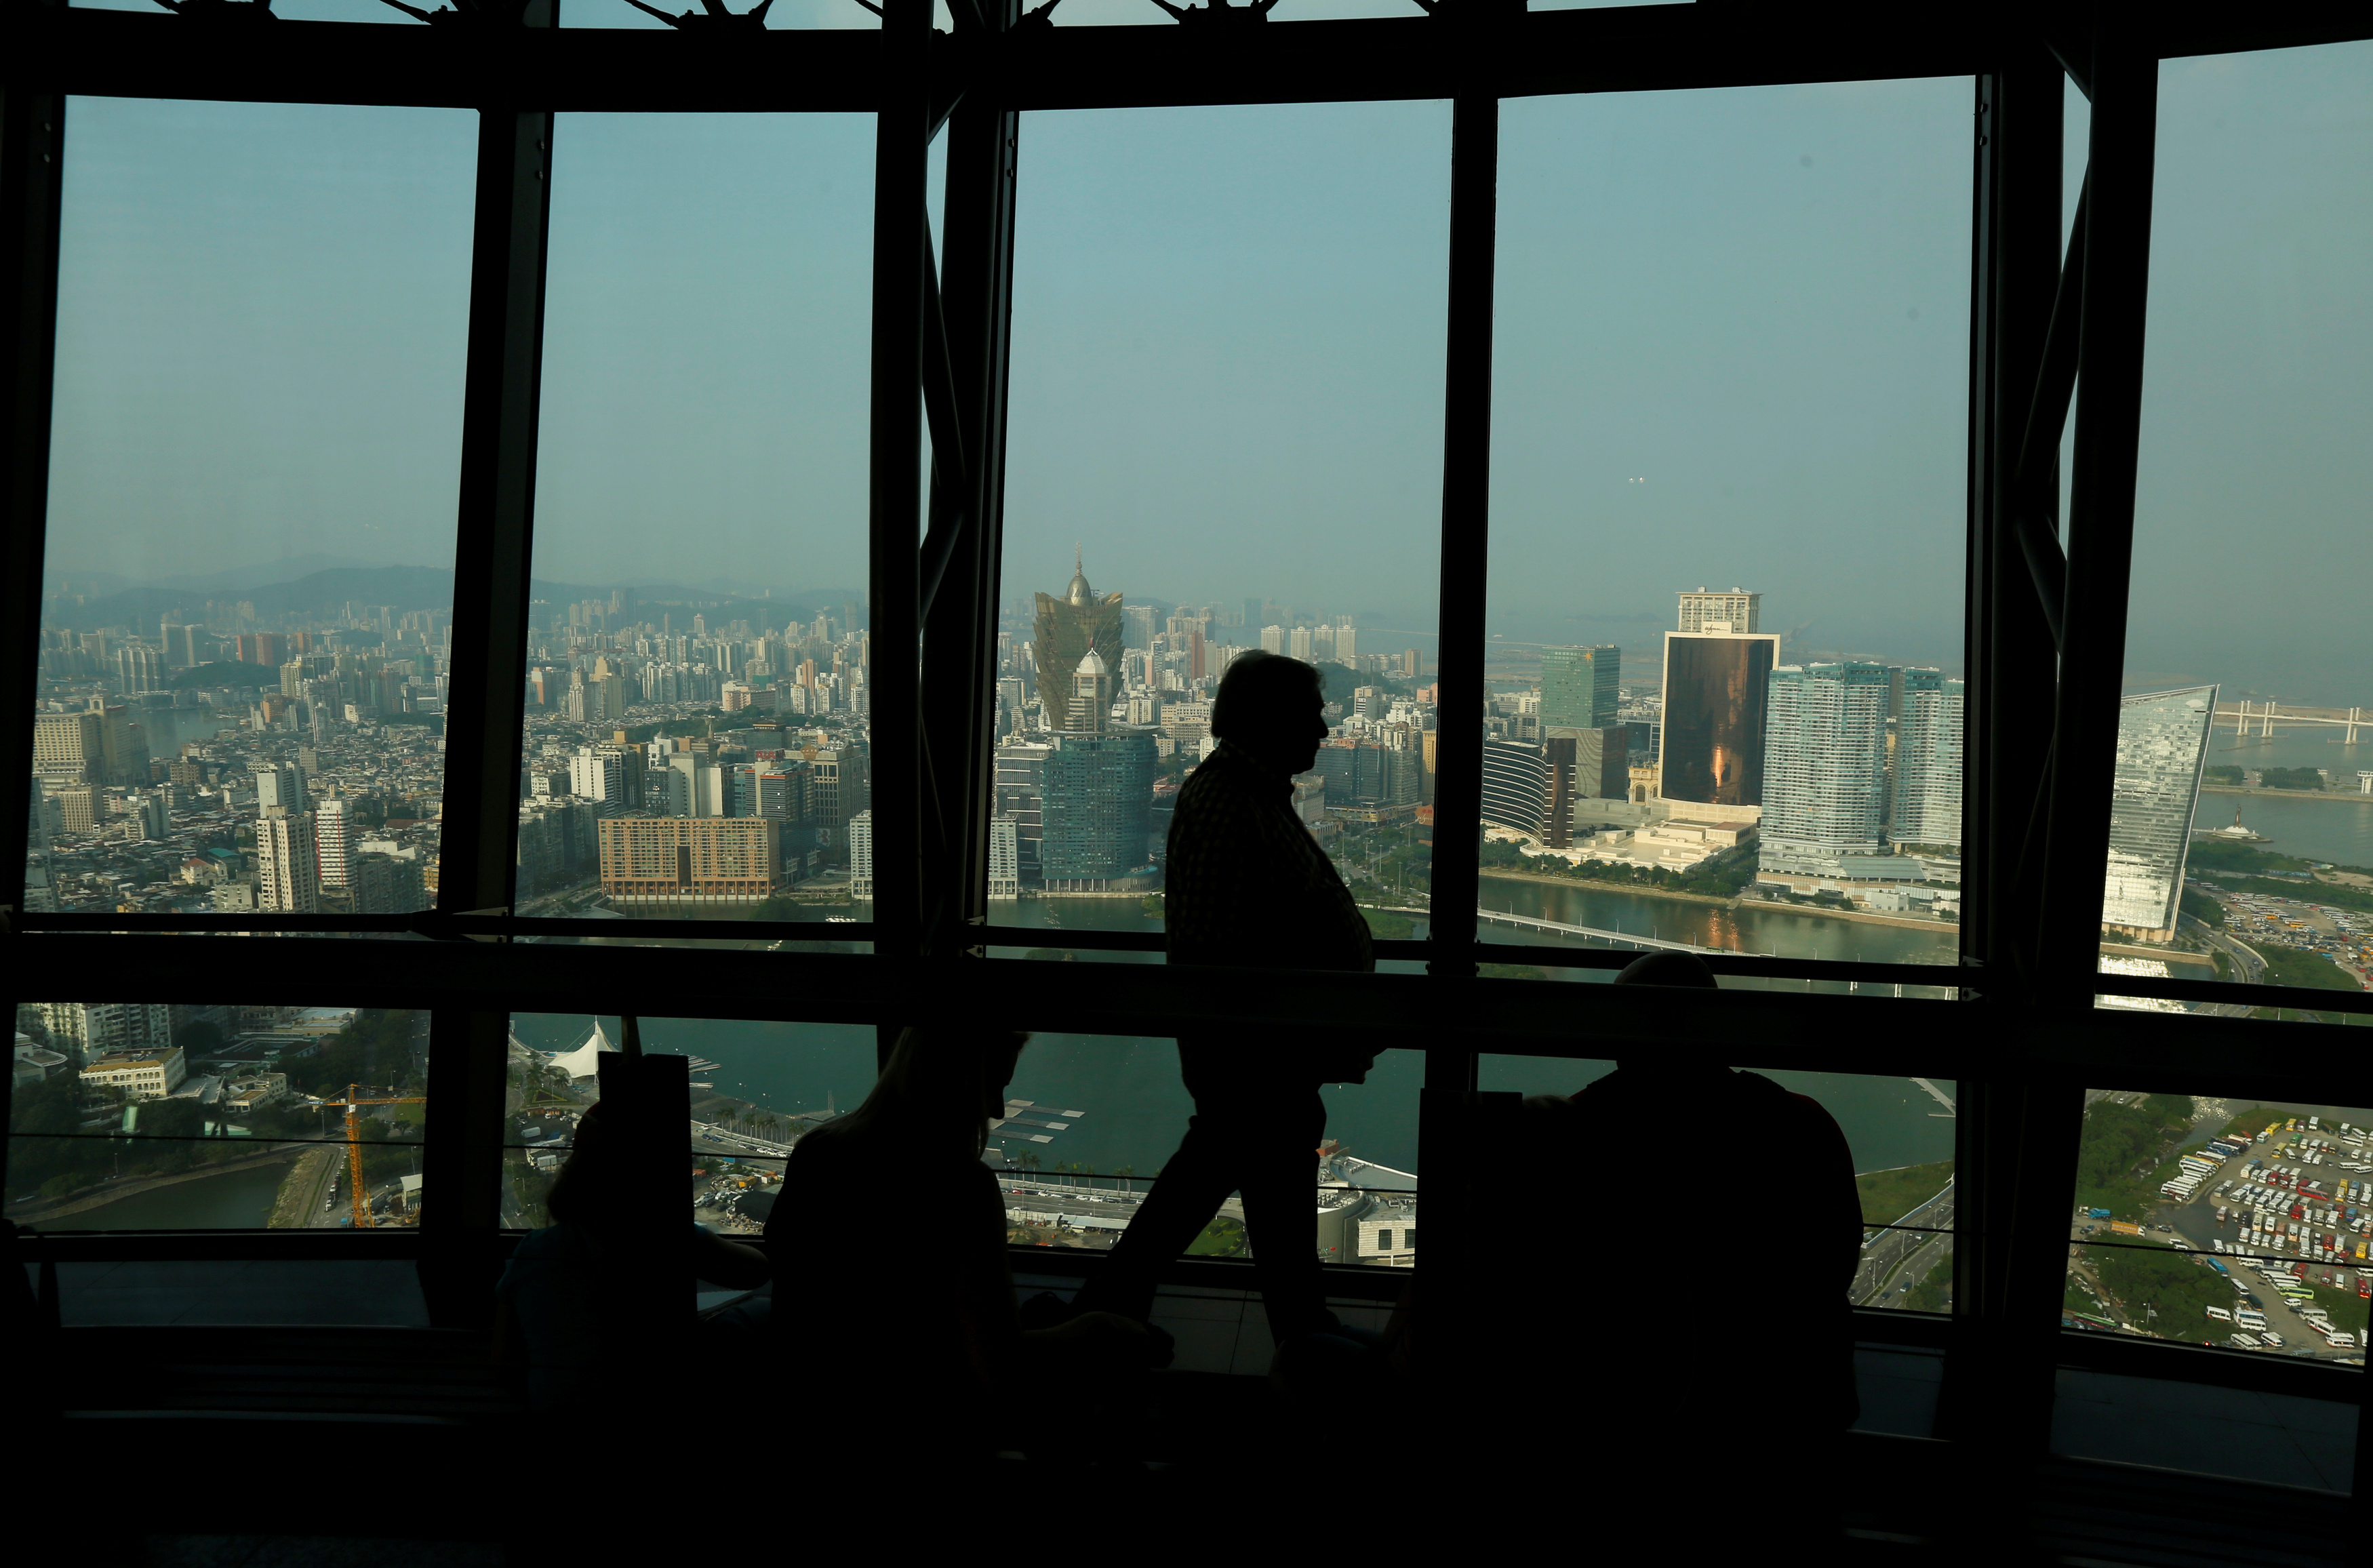 A visitor walks inside Macau Tower overlooking the skyline of Macau peninsula, China October 8, 2015. Picture taken October 8, 2015. REUTERS/Bobby Yip